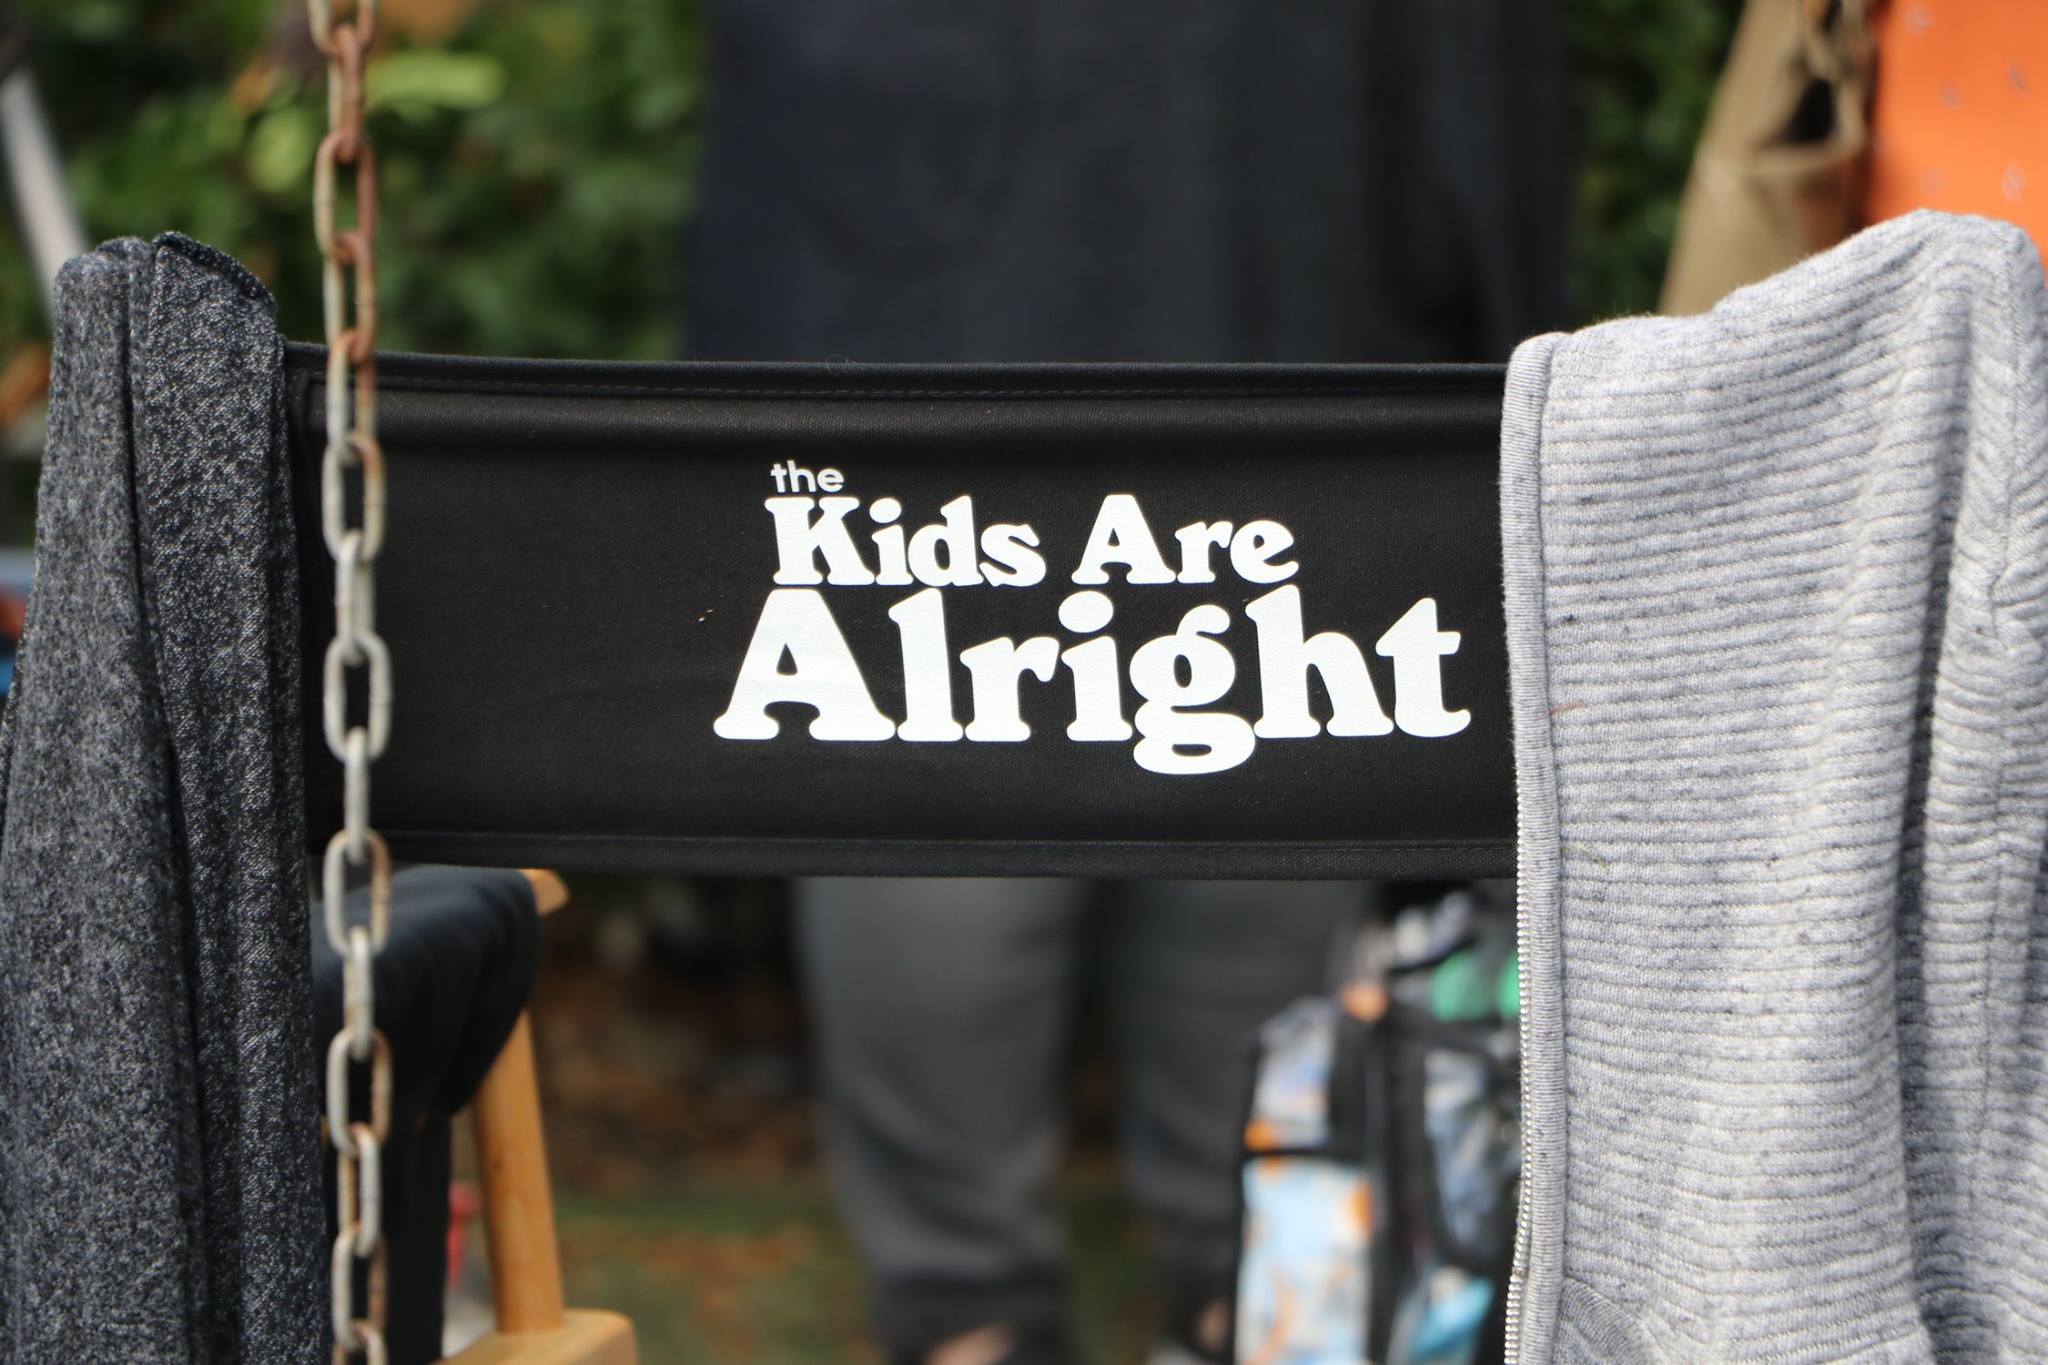 set of The Kids Are Alright